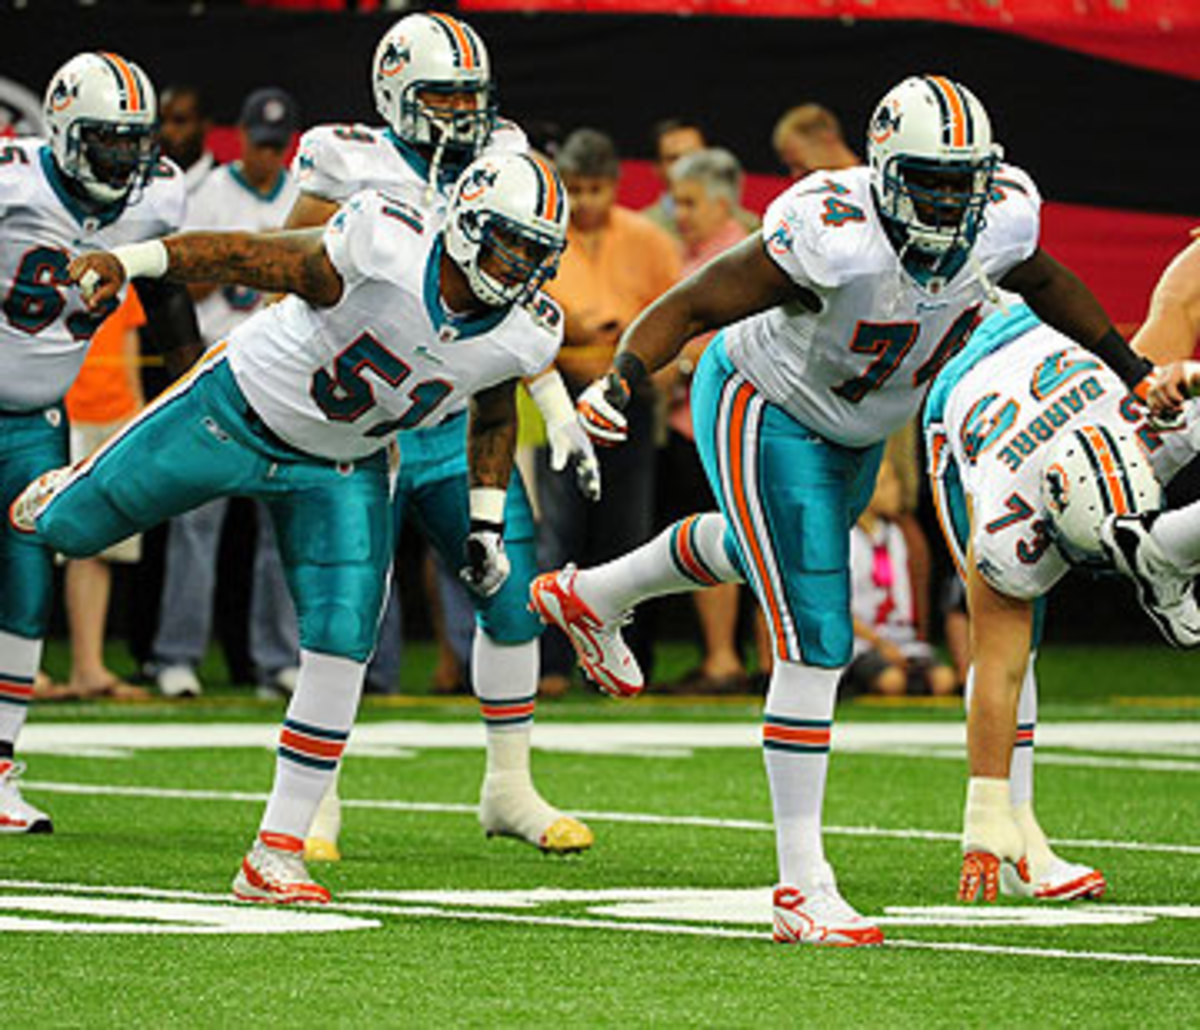 Mike Pouncey (51) and John Jerry (74) likely will be facing punishment from the NFL for their roles in the harassment of Jonathan Martin. (Scott Cunningham/Getty Images)